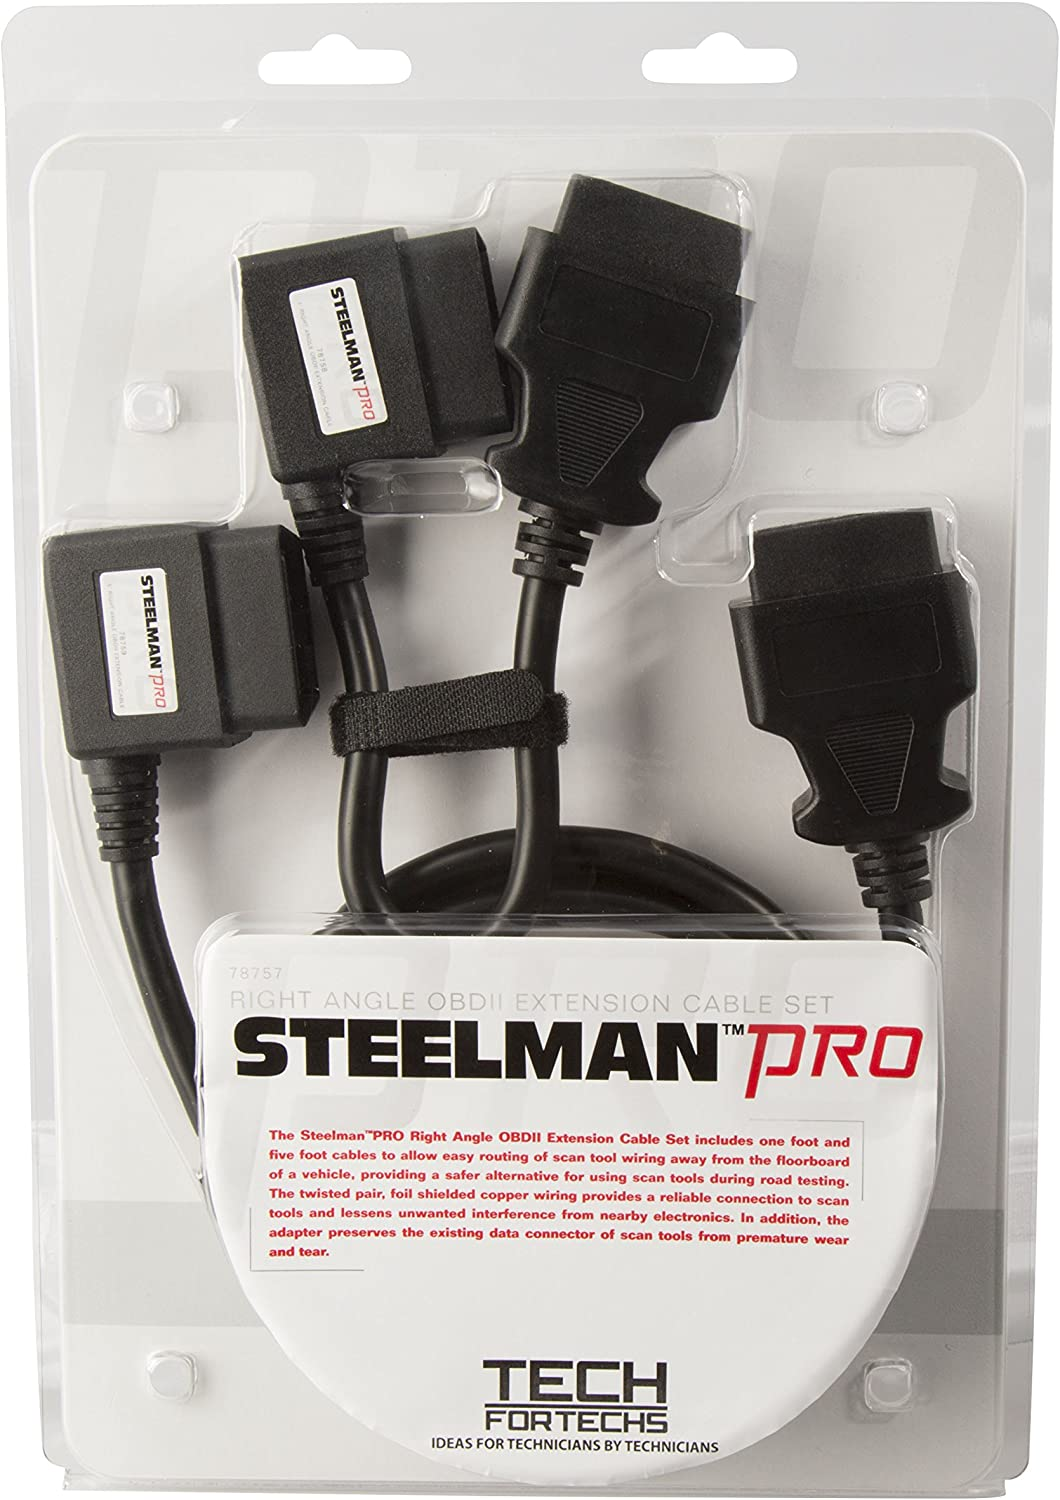 Right Angle OBDII Diagnostic Extension Cable STEELMAN PRO 78759 60 in